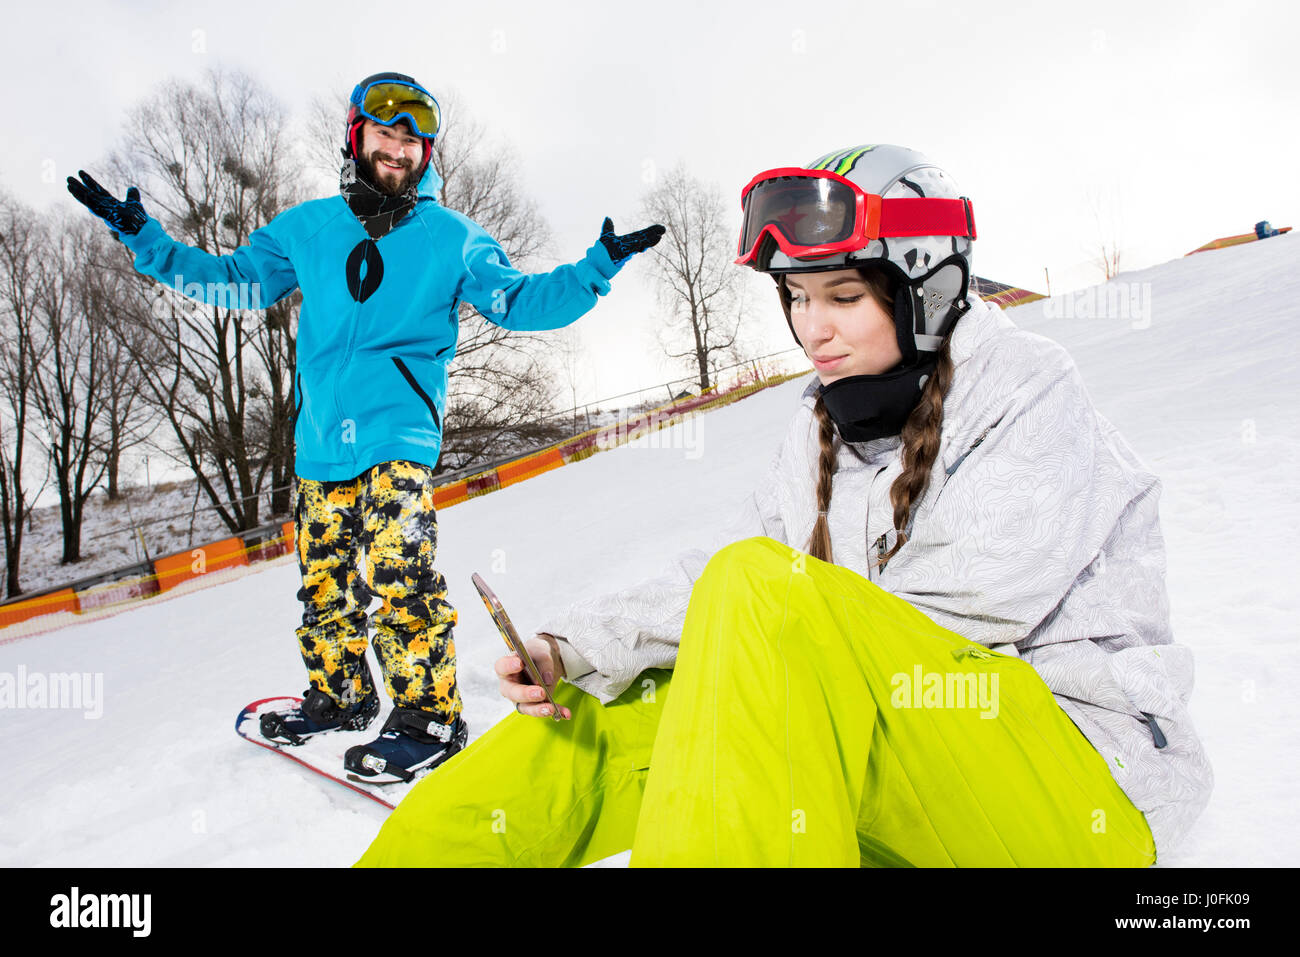 Happy bearded man on snowboard looking at female snowboarder using smartphone - Stock Image